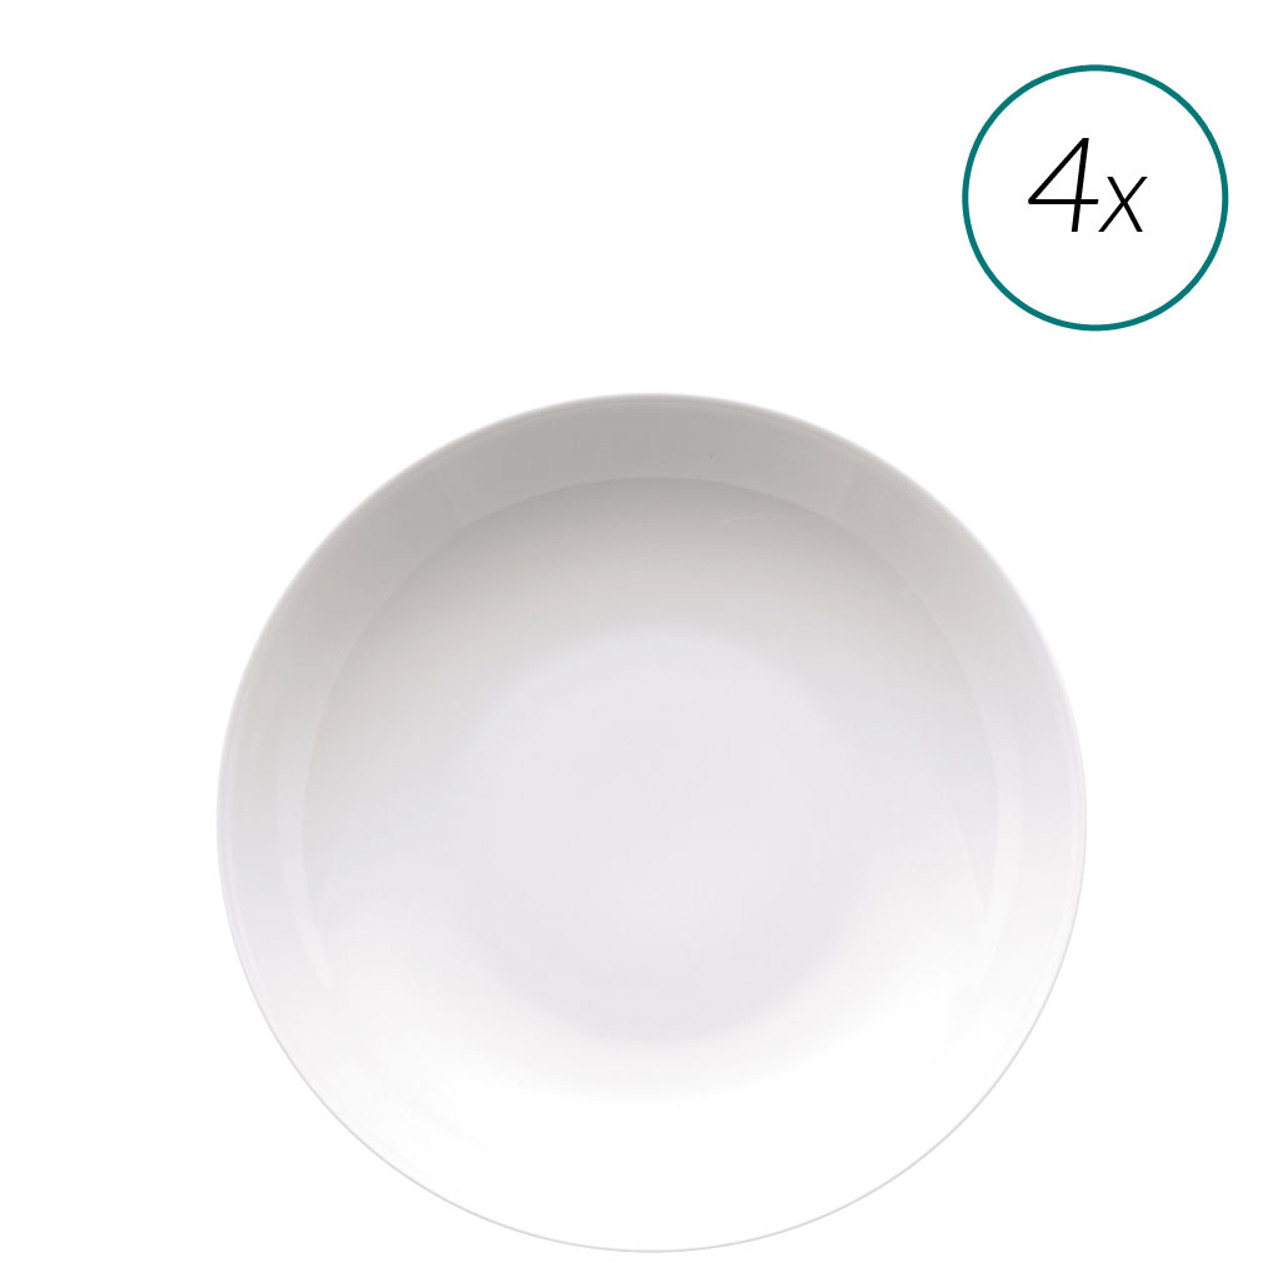 Soup Plates Set 4 pieces 9 inch | Medaillon White  sc 1 st  Rosenthal & Soup Plates Set 4 pieces 9 inch | Medaillon White | Rosenthal Shop